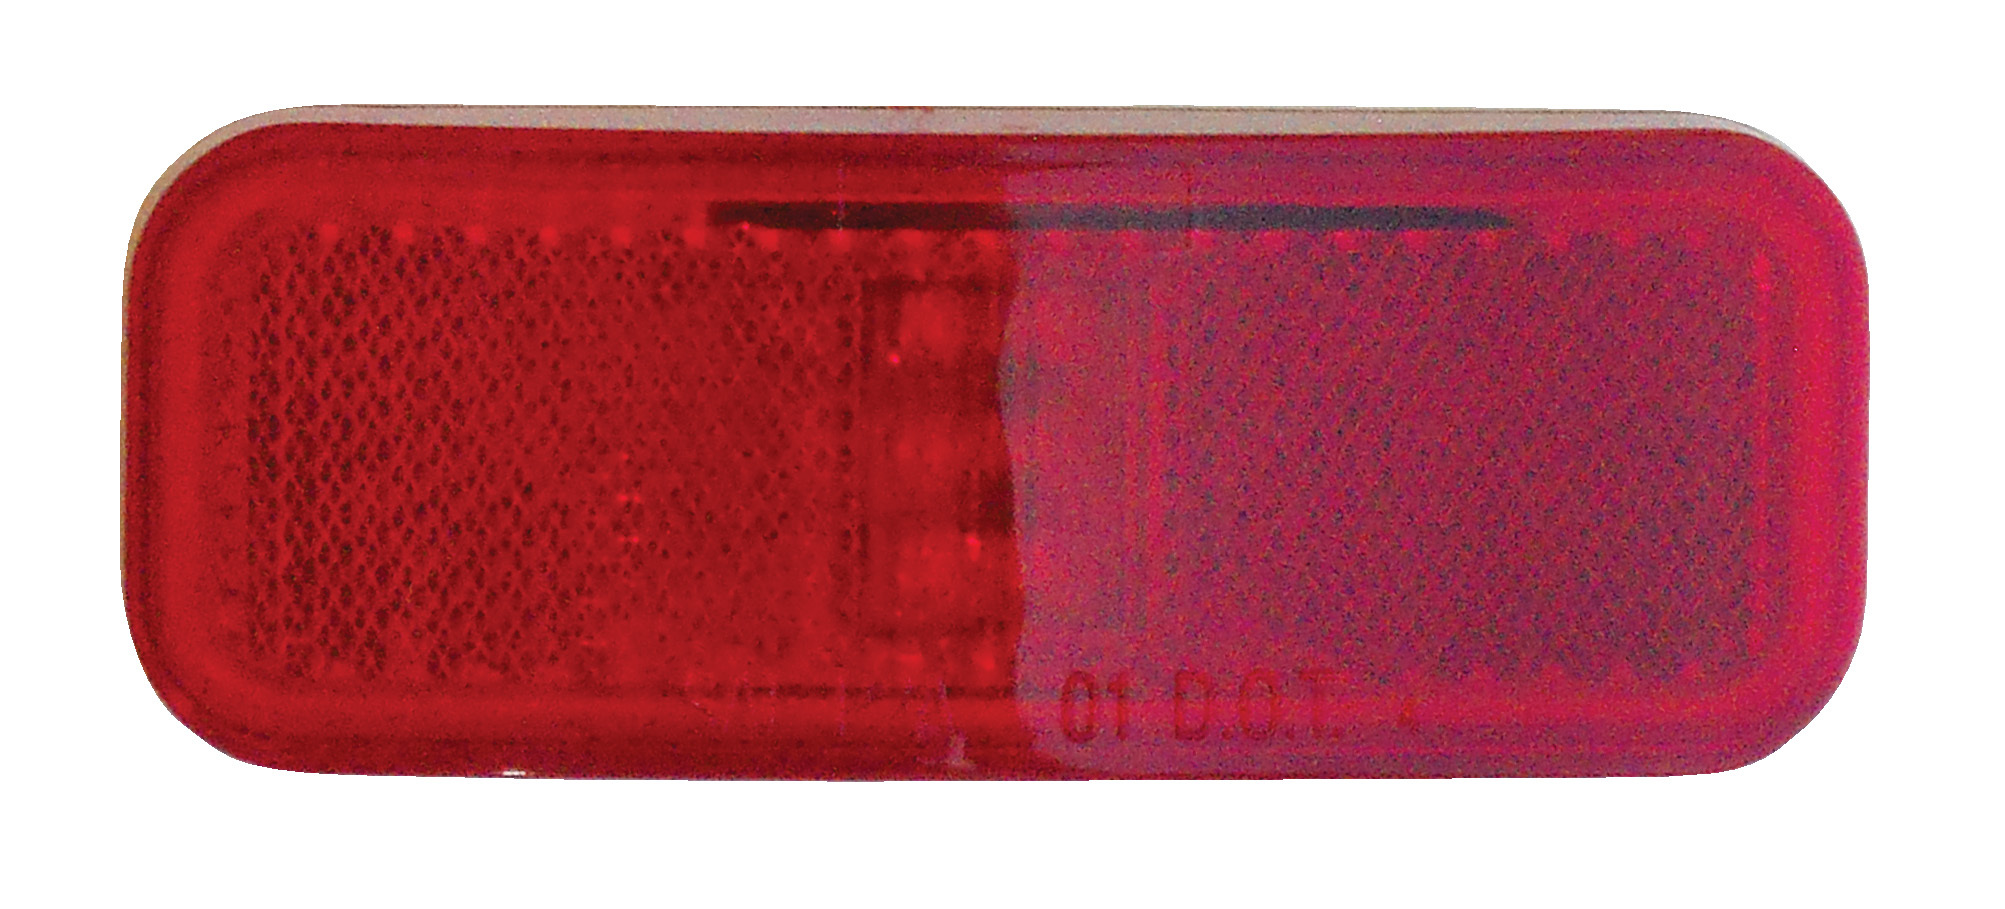 "Weatherproof LED 4"" x 1.5"" Marker Light with Reflector - Red 52719"